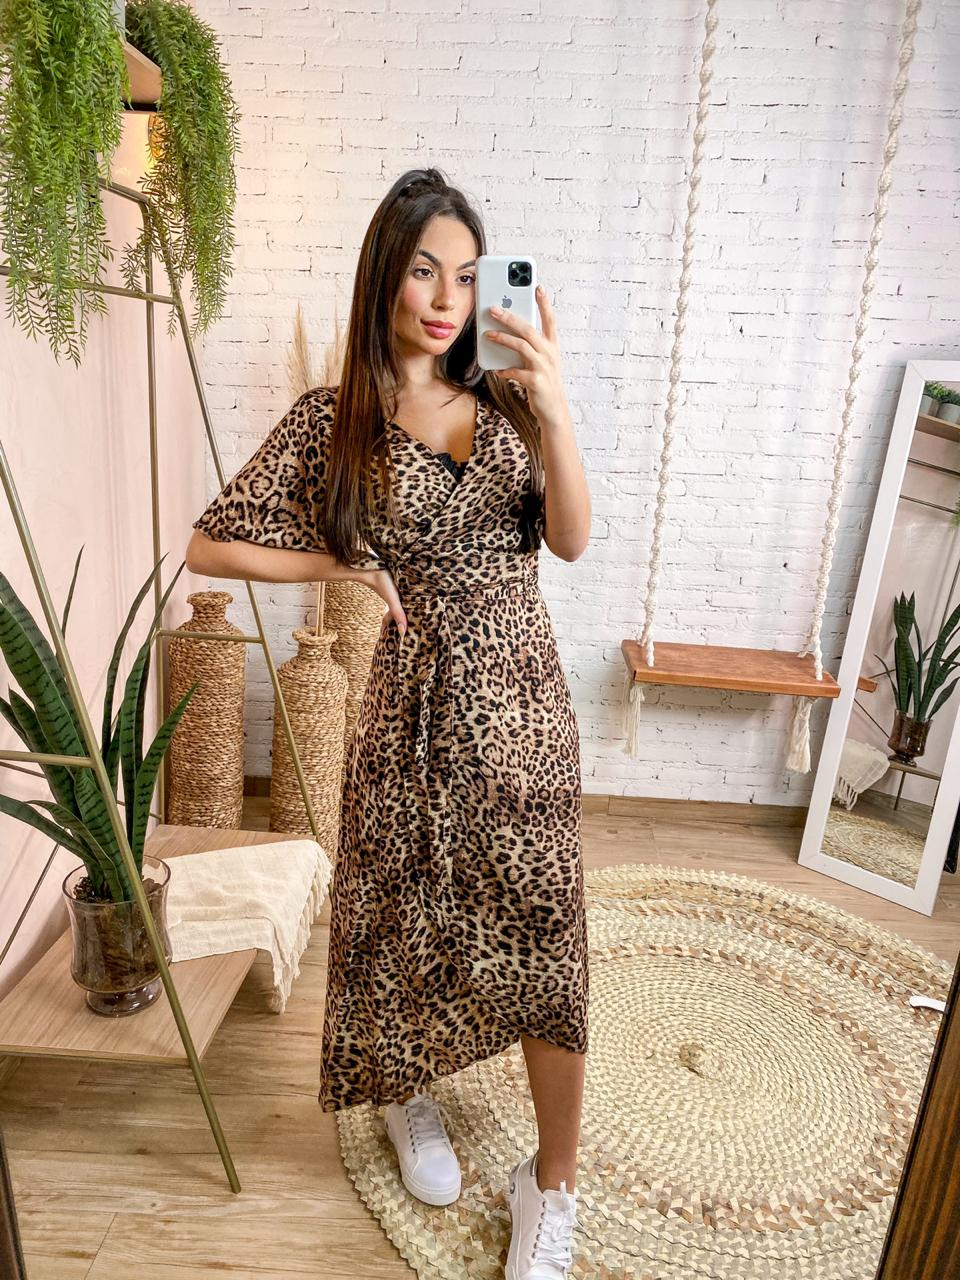 VESTIDO DE VISCOSE TRANSPASSADO ANIMAL PRINT